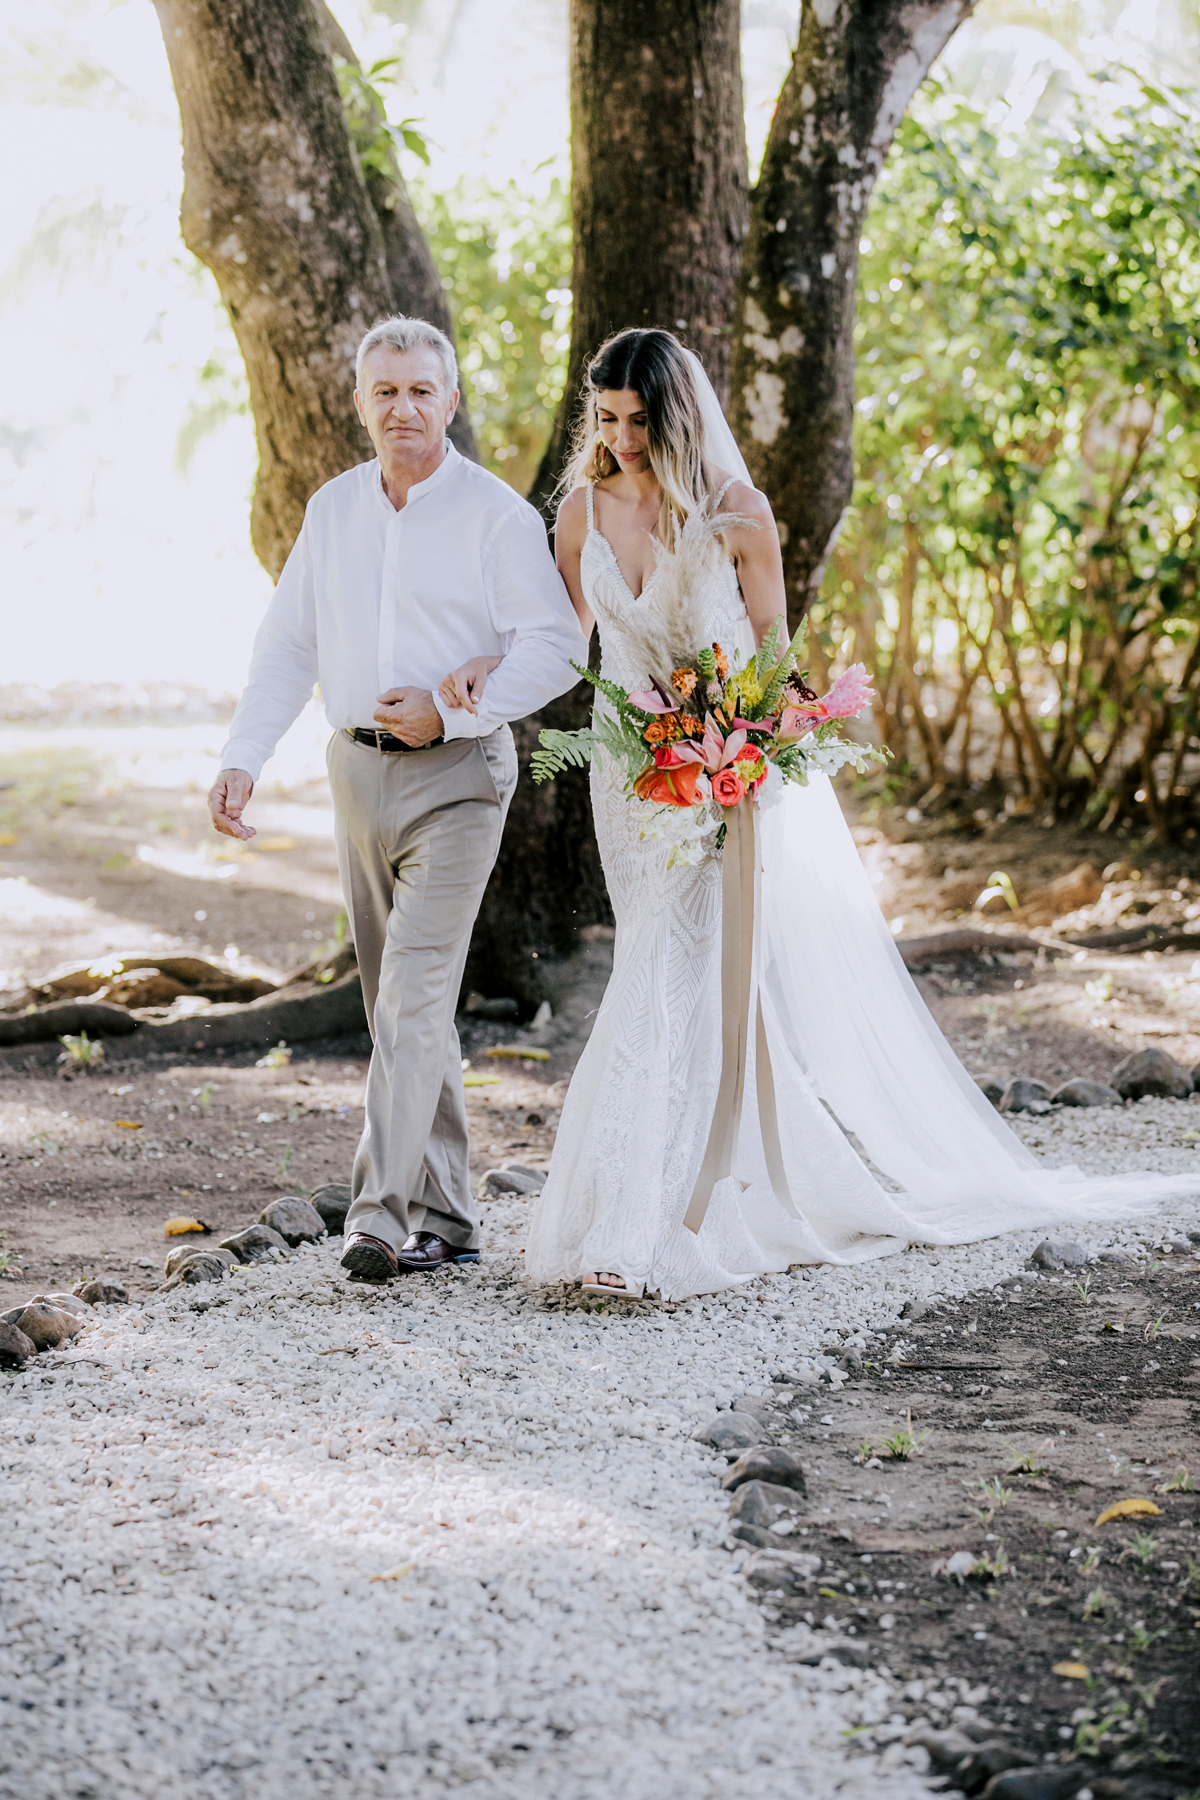 father of the bride walking bride down outdoor costa rican wedding venue aisle